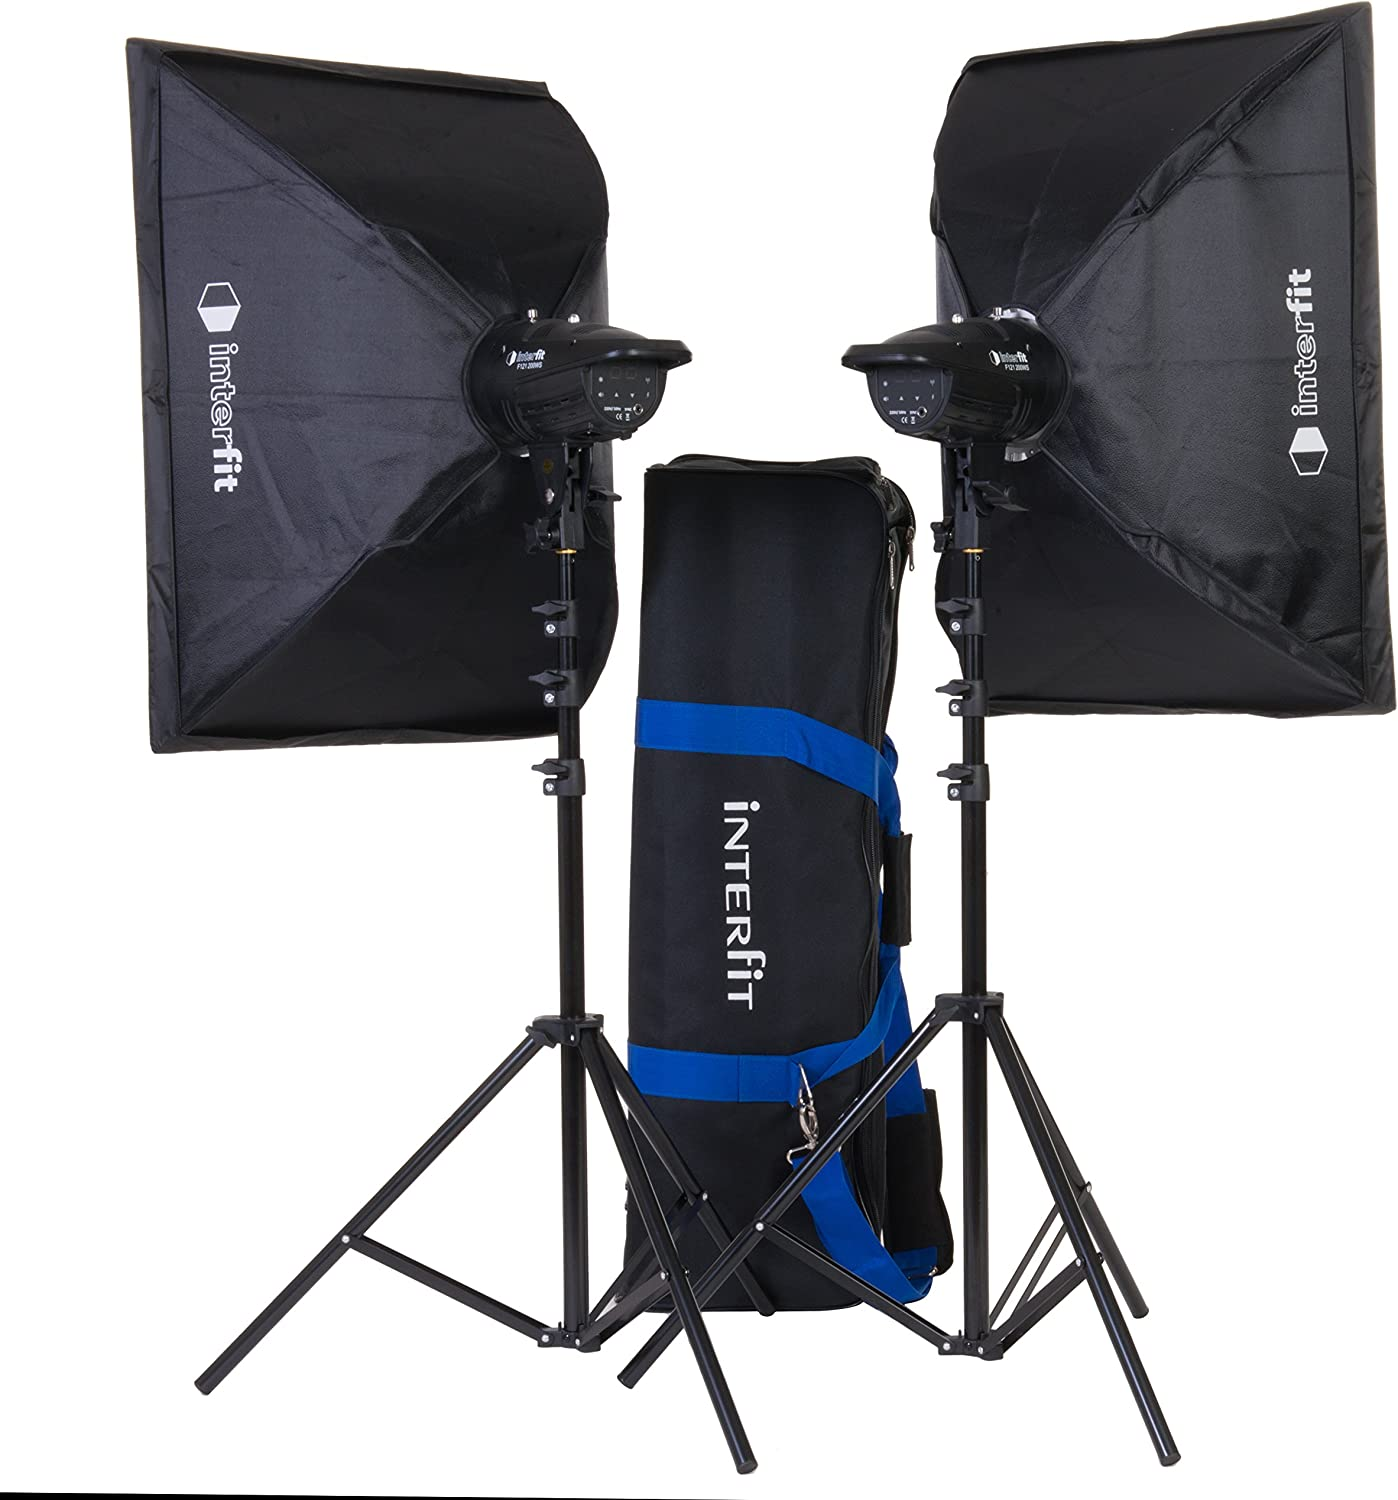 Interfit F121 2x 200W Head Softbox Studio Flash Photography Kit with Carry Bag